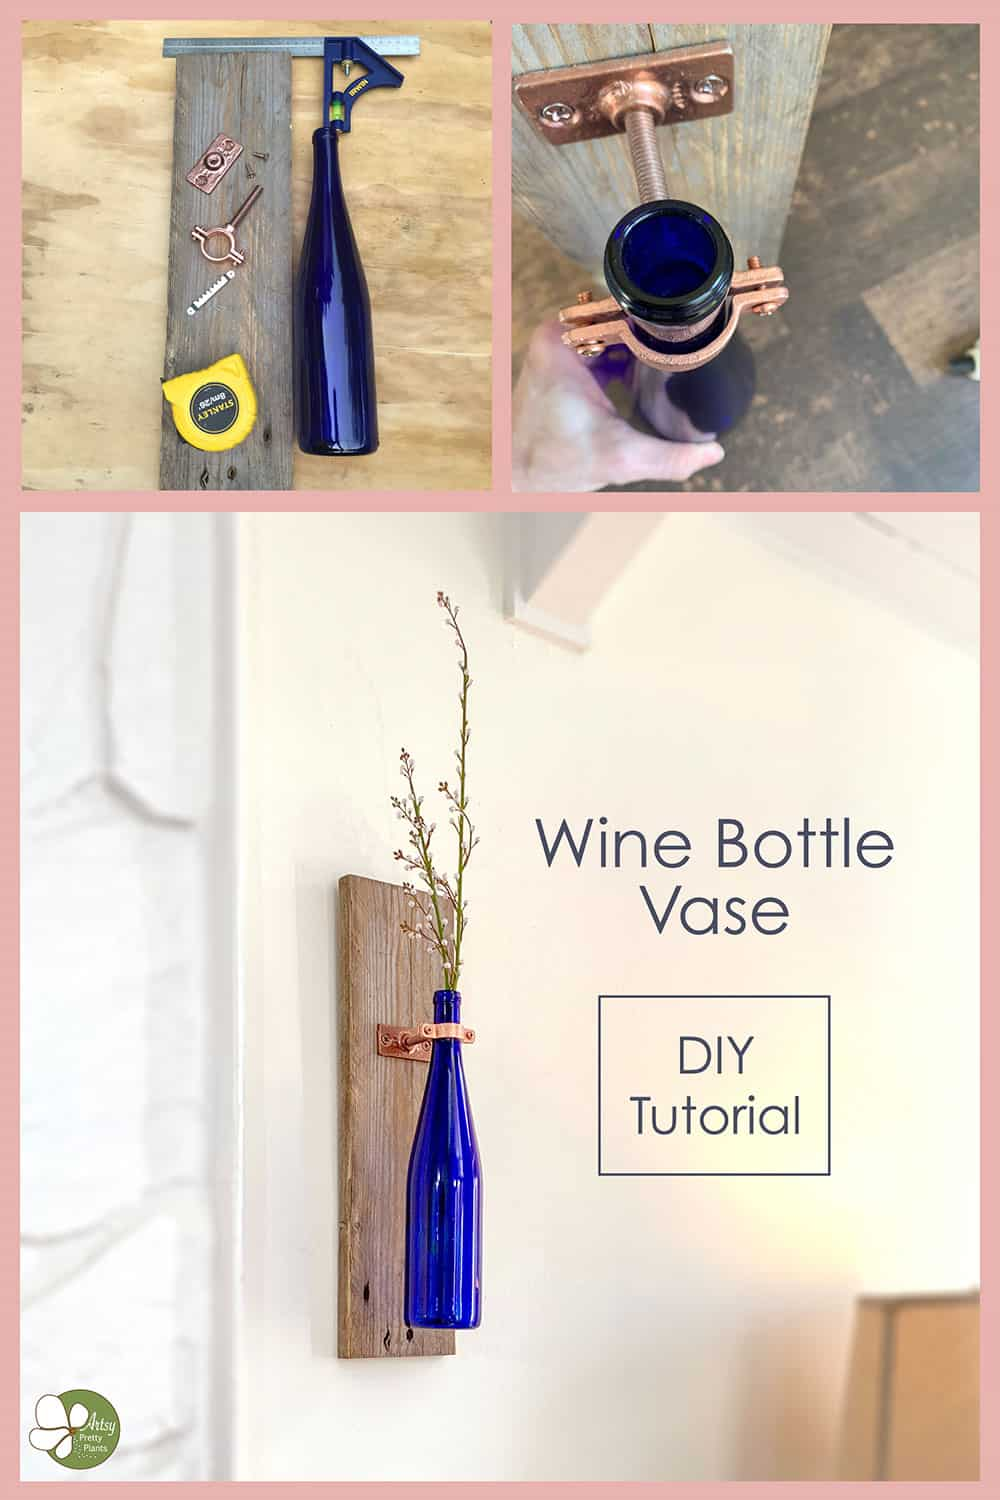 step for making wine bottle vase